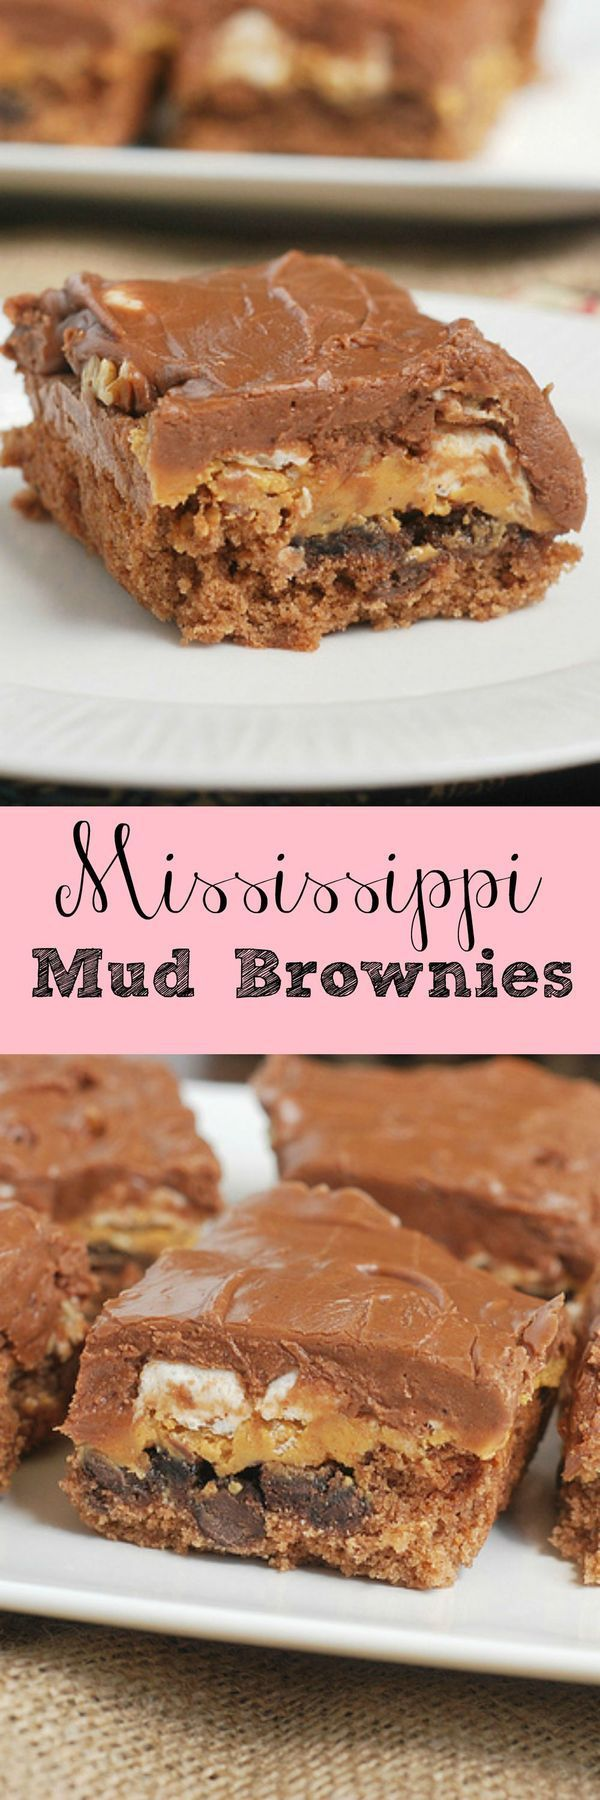 Mississippi Mud Brownies - chocolate, marshmallows, peanut butter, pecans, and more! These are so rich and delicious!